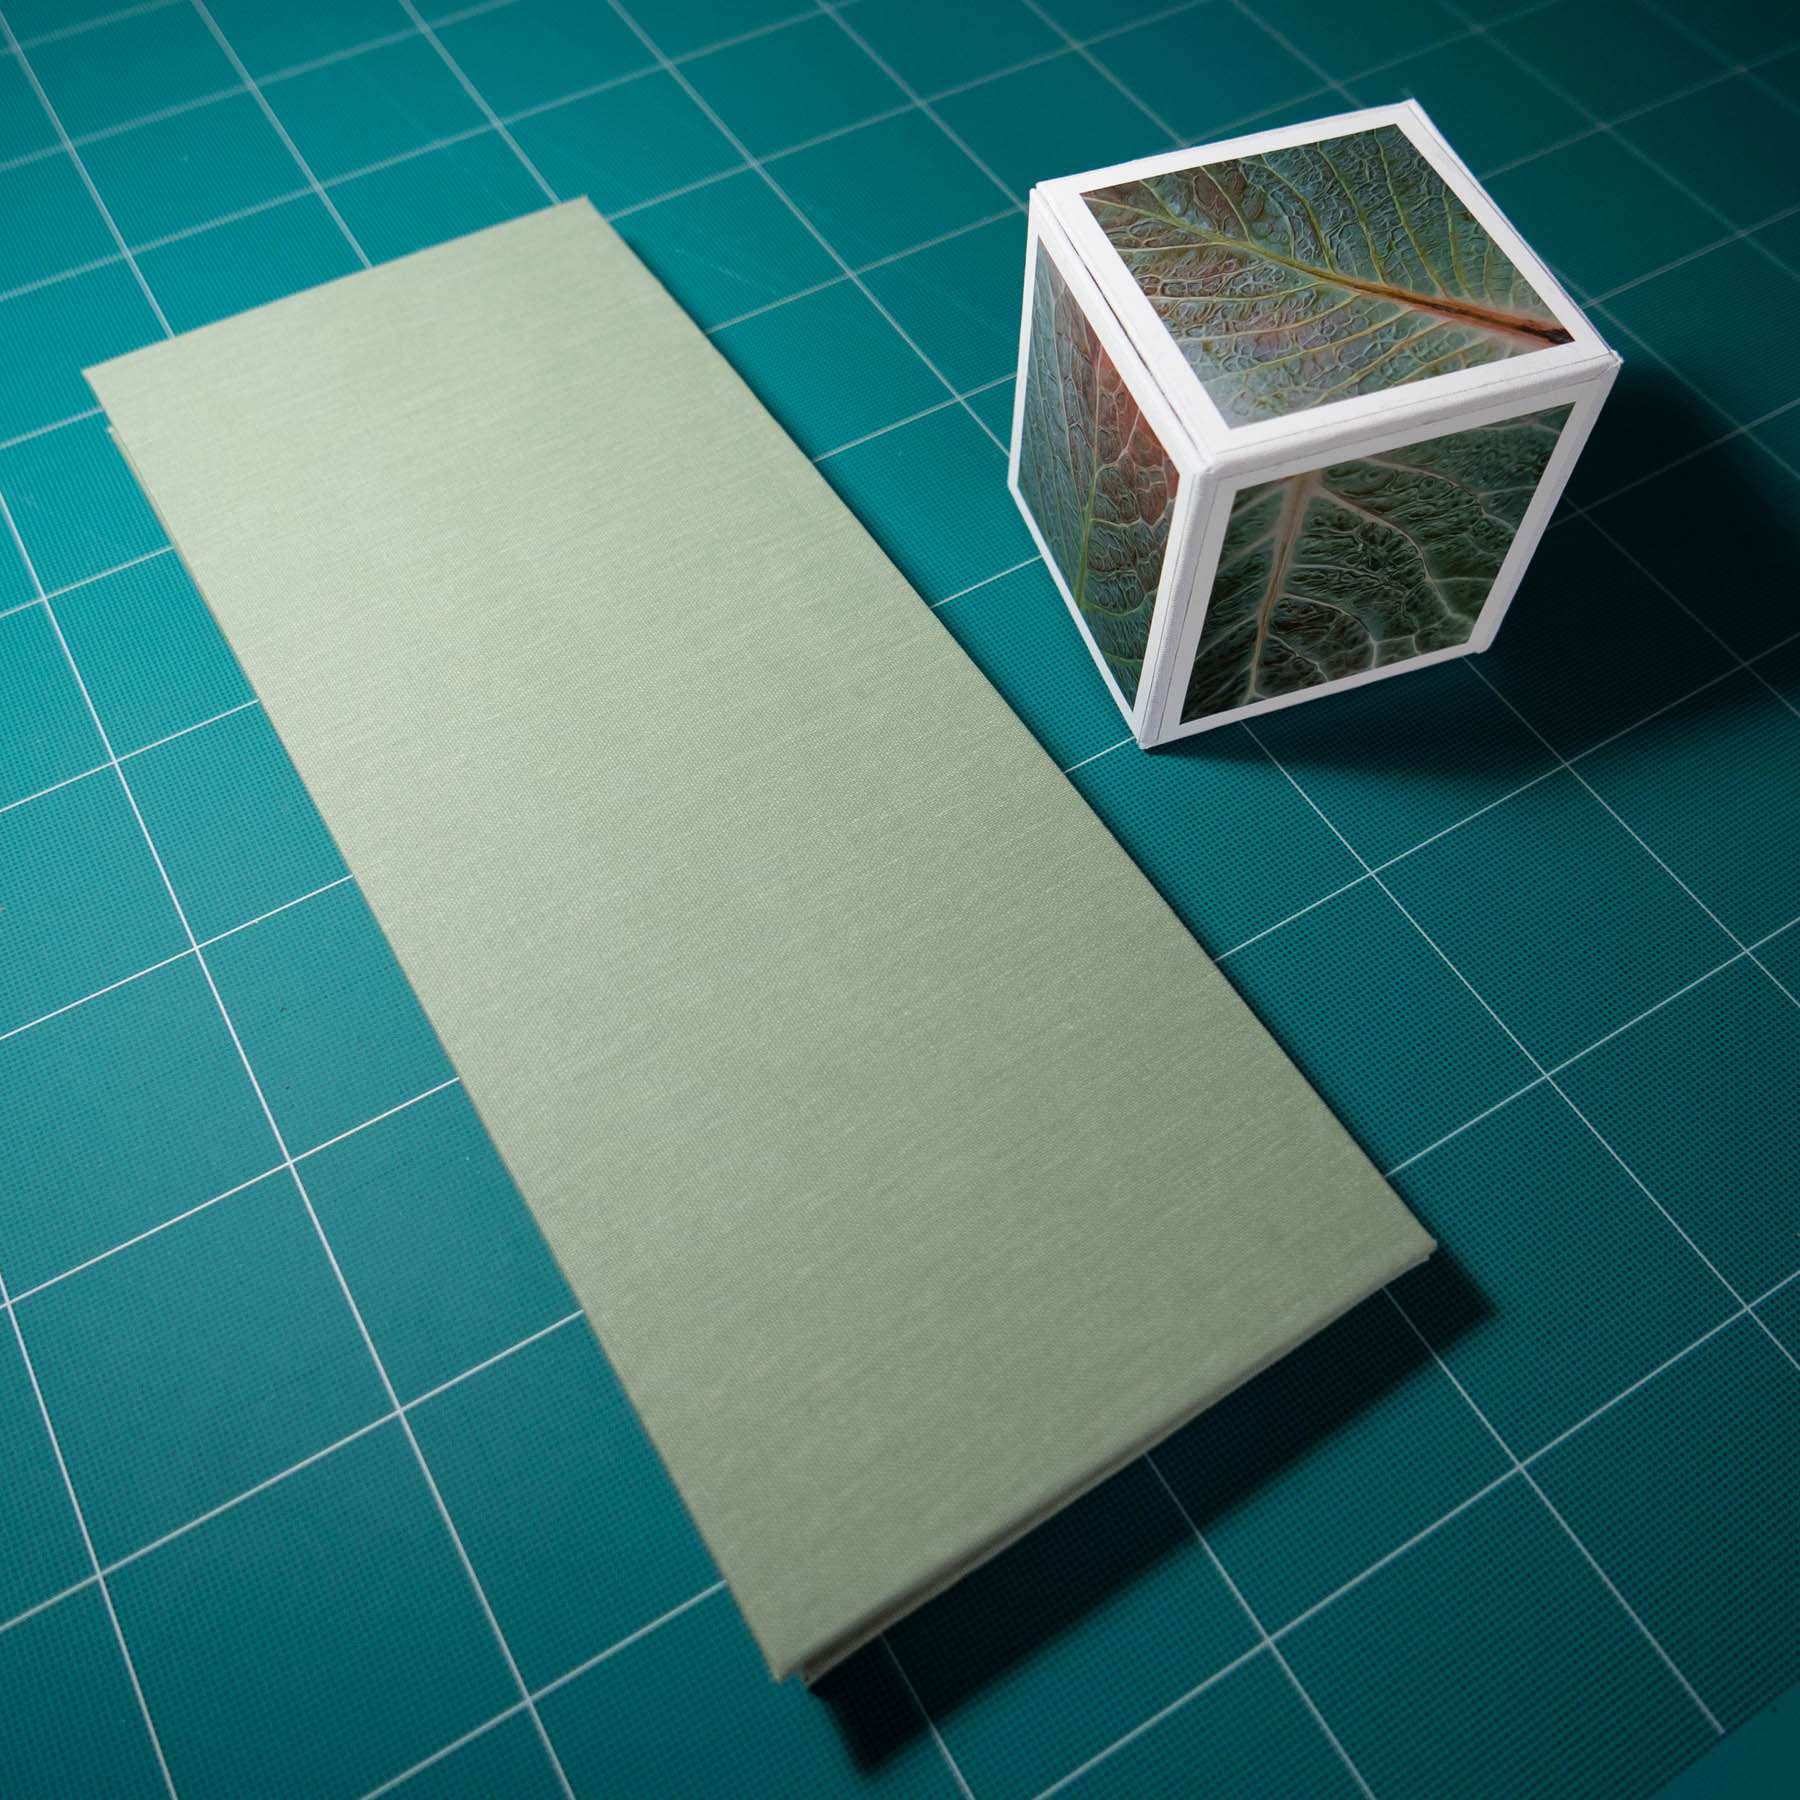 Savoy Leaves book closed and photo cube.